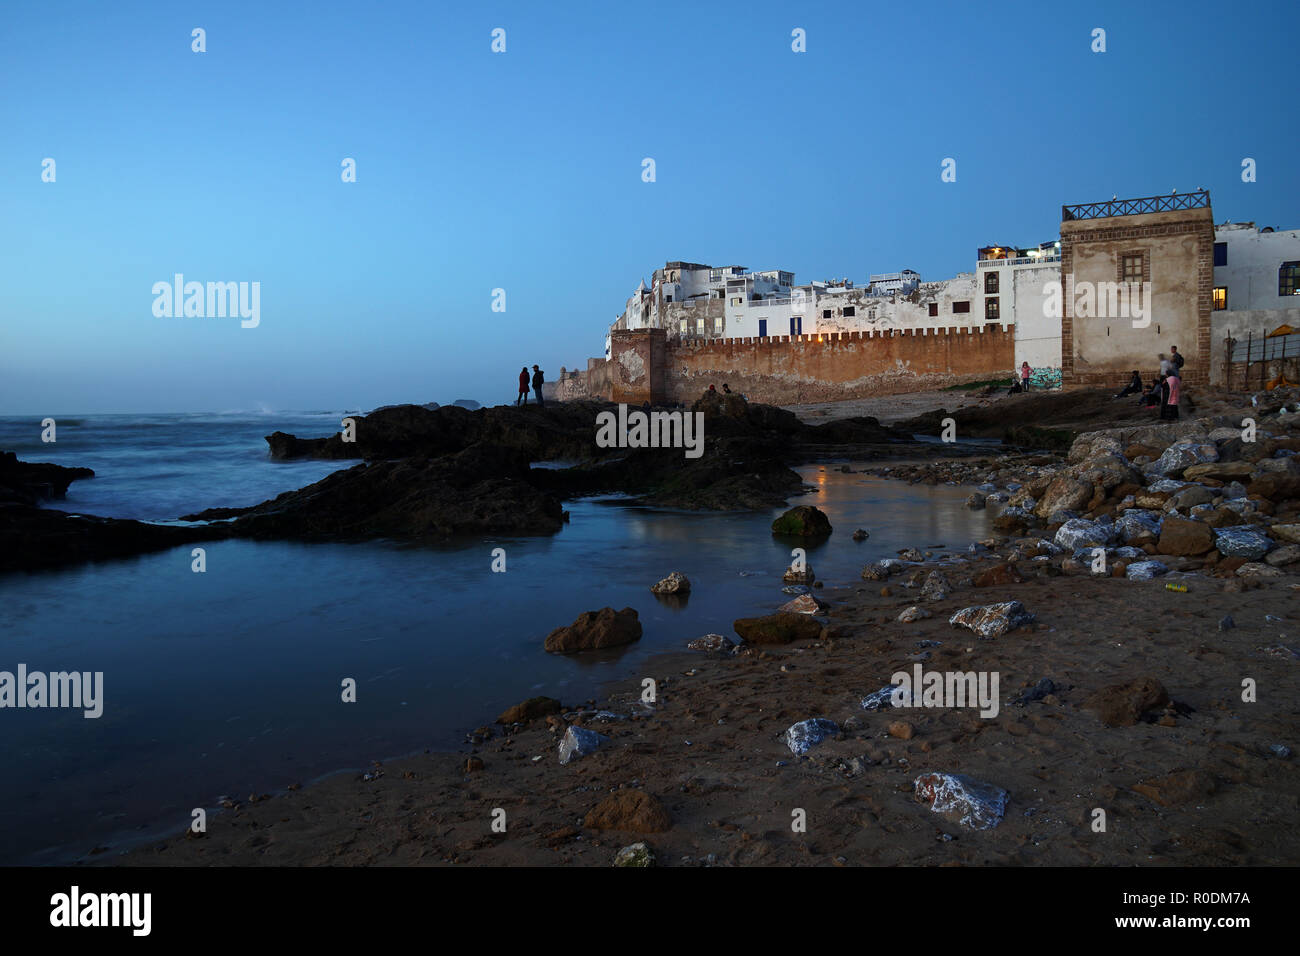 View on the medina of Essaouira at the blue hour, Morocco. - Stock Image